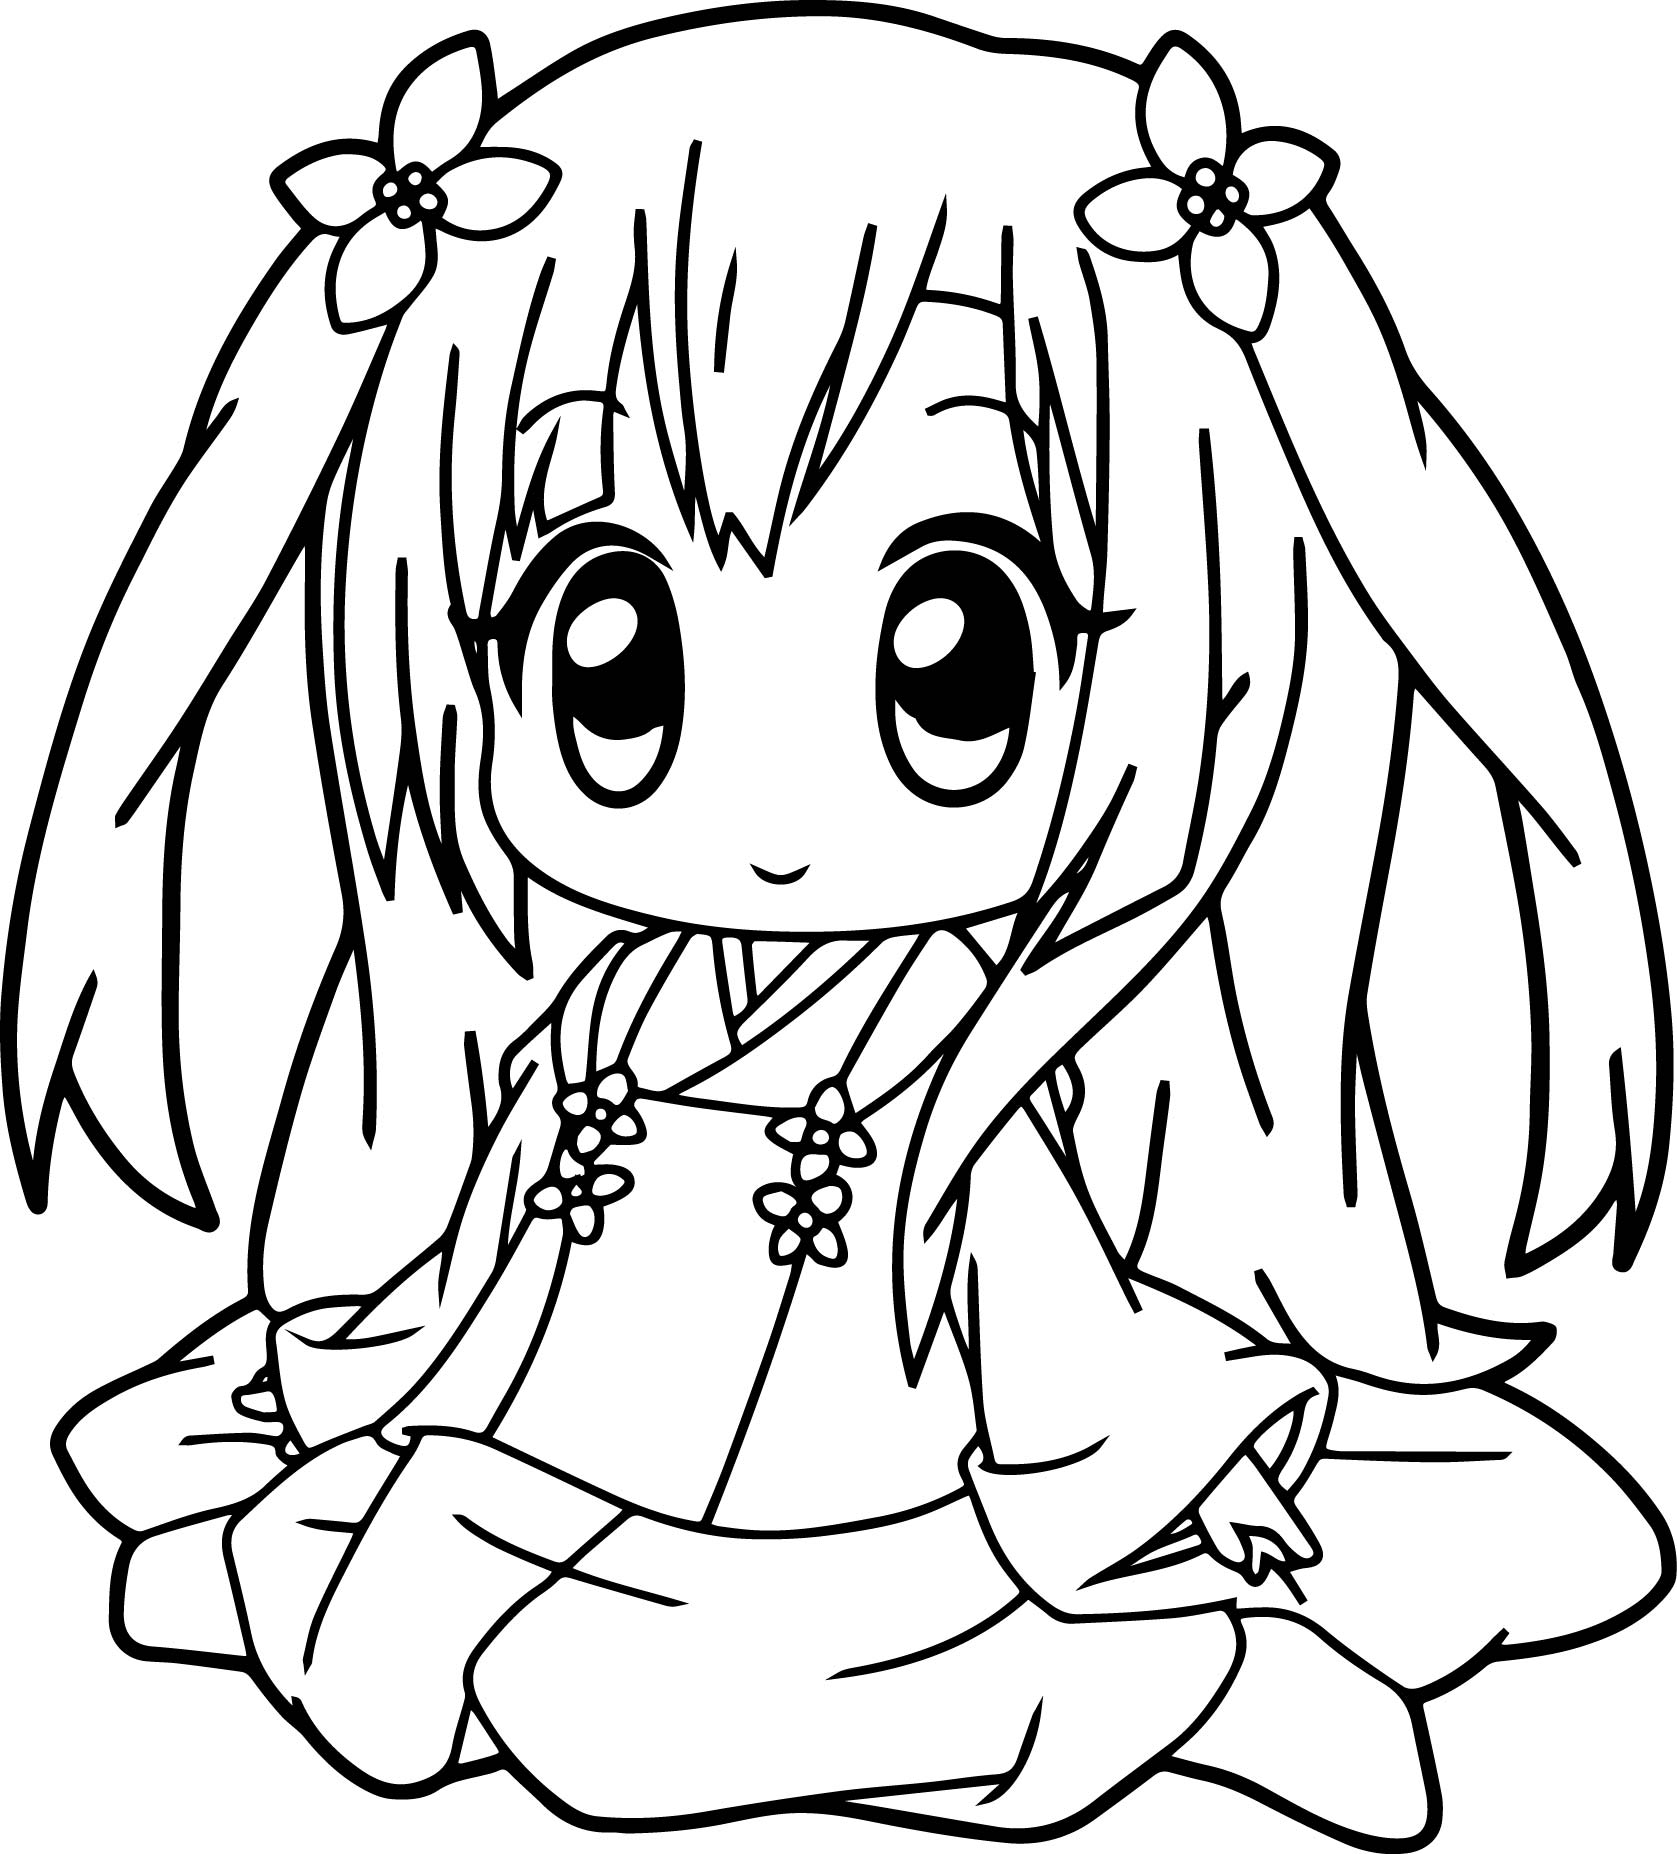 anime coloring pages easy pin on wecoloringpage pages anime easy coloring